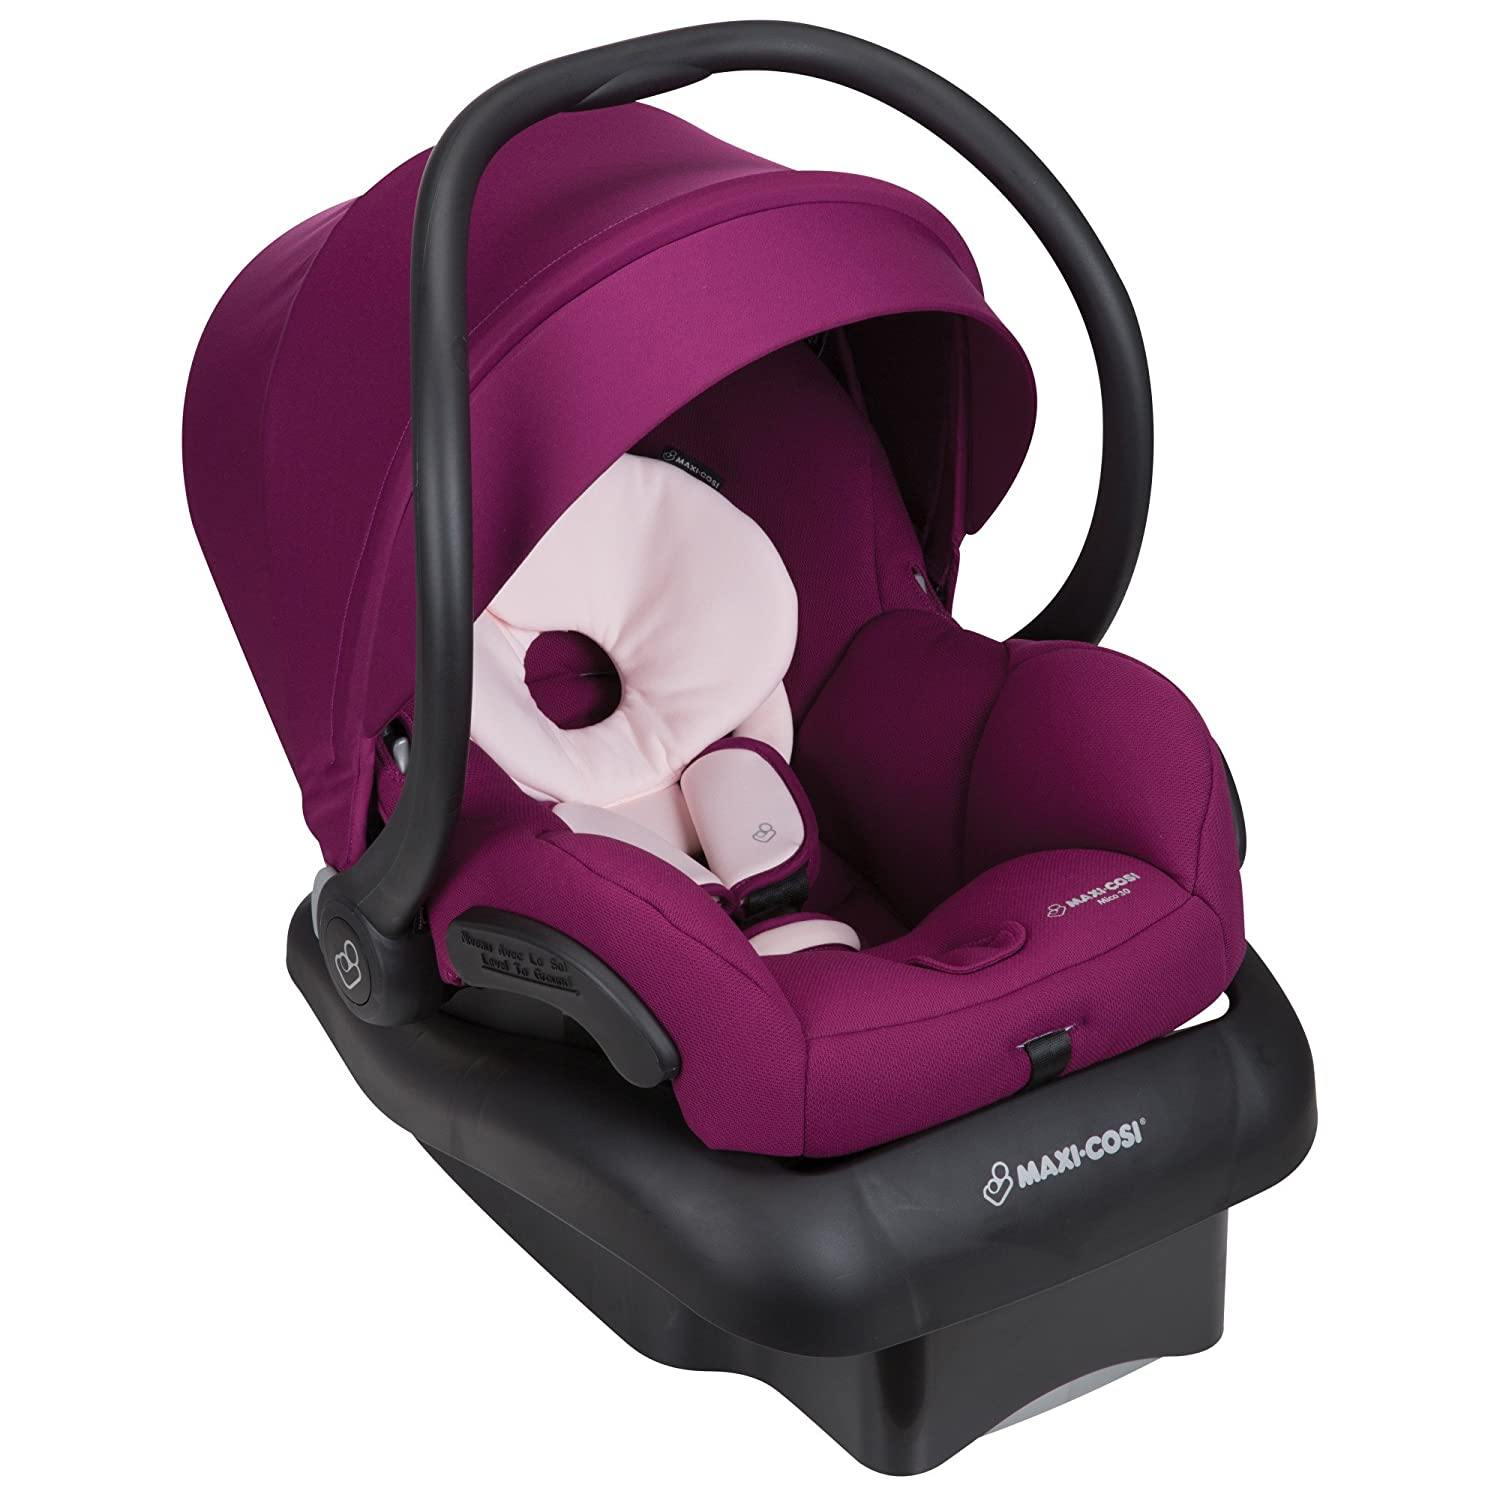 Maxi-Cosi Mico 30 Infant Car Seat, Violet Caspia Dorel Juvenile Group-CA IC301ETR